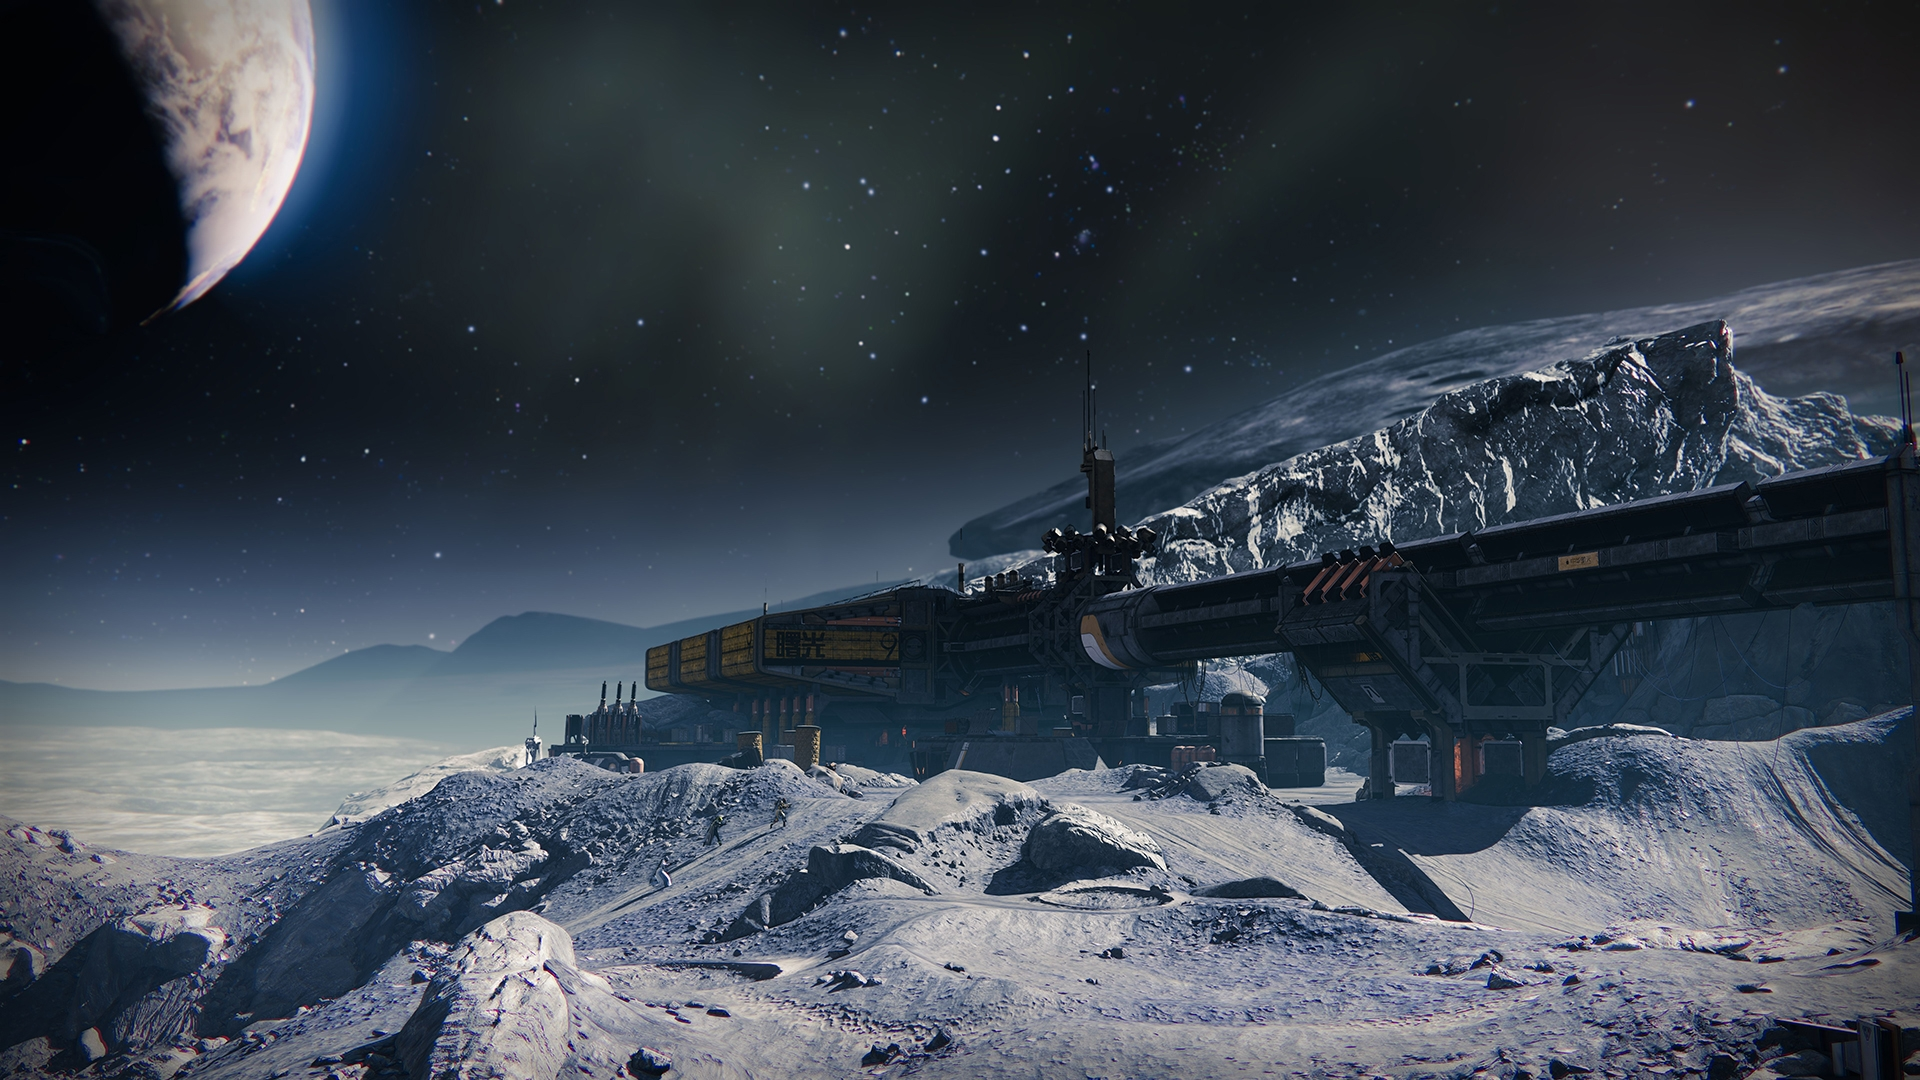 24 Destiny Backgrounds Wallpapers Images Pictures Design 1920x1080